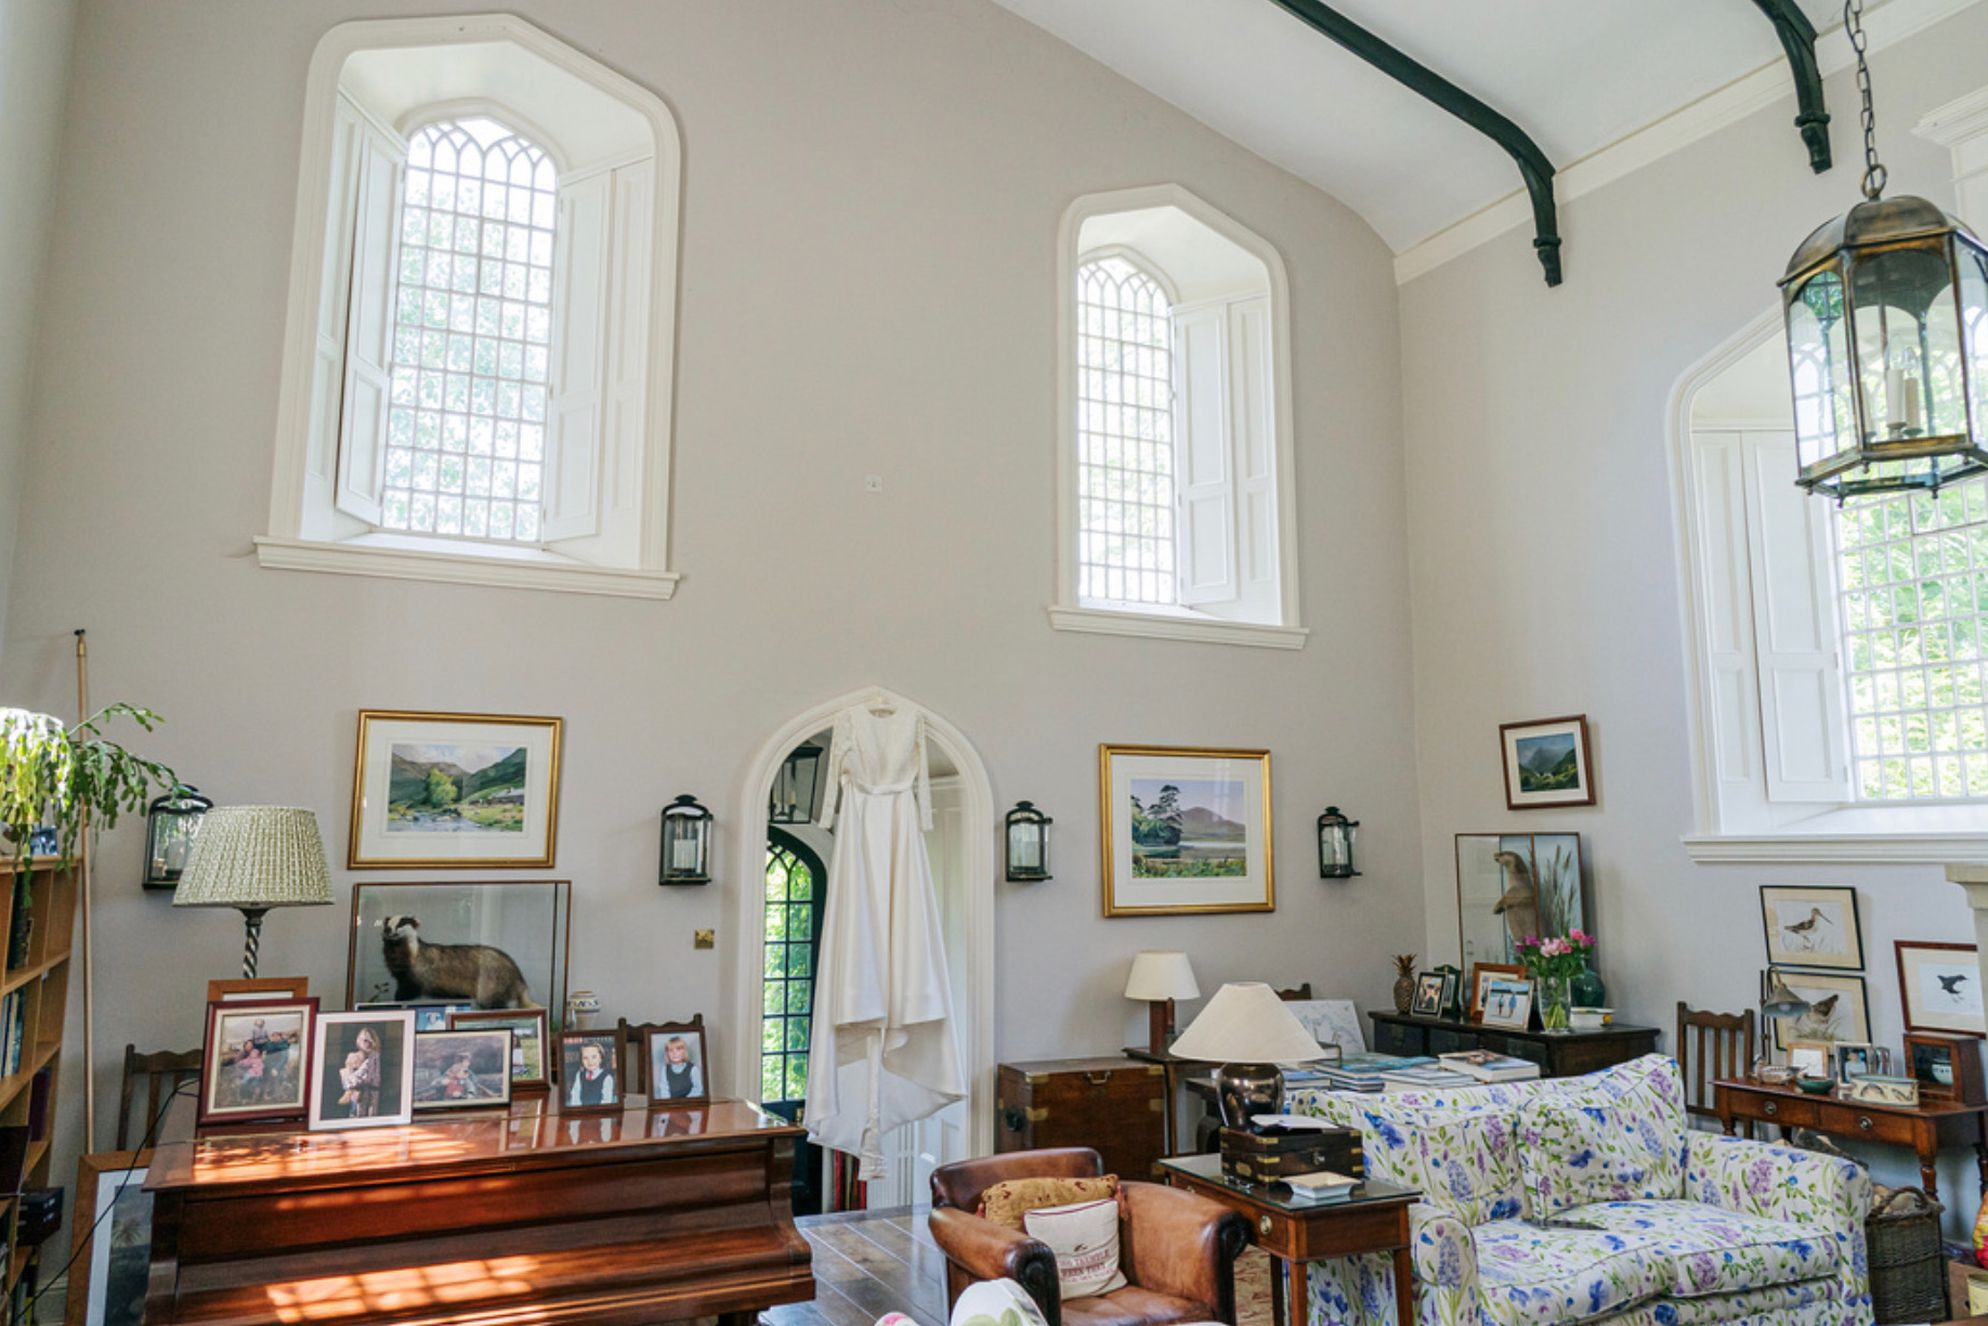 Chapel House, Nether Wallop - Gallery